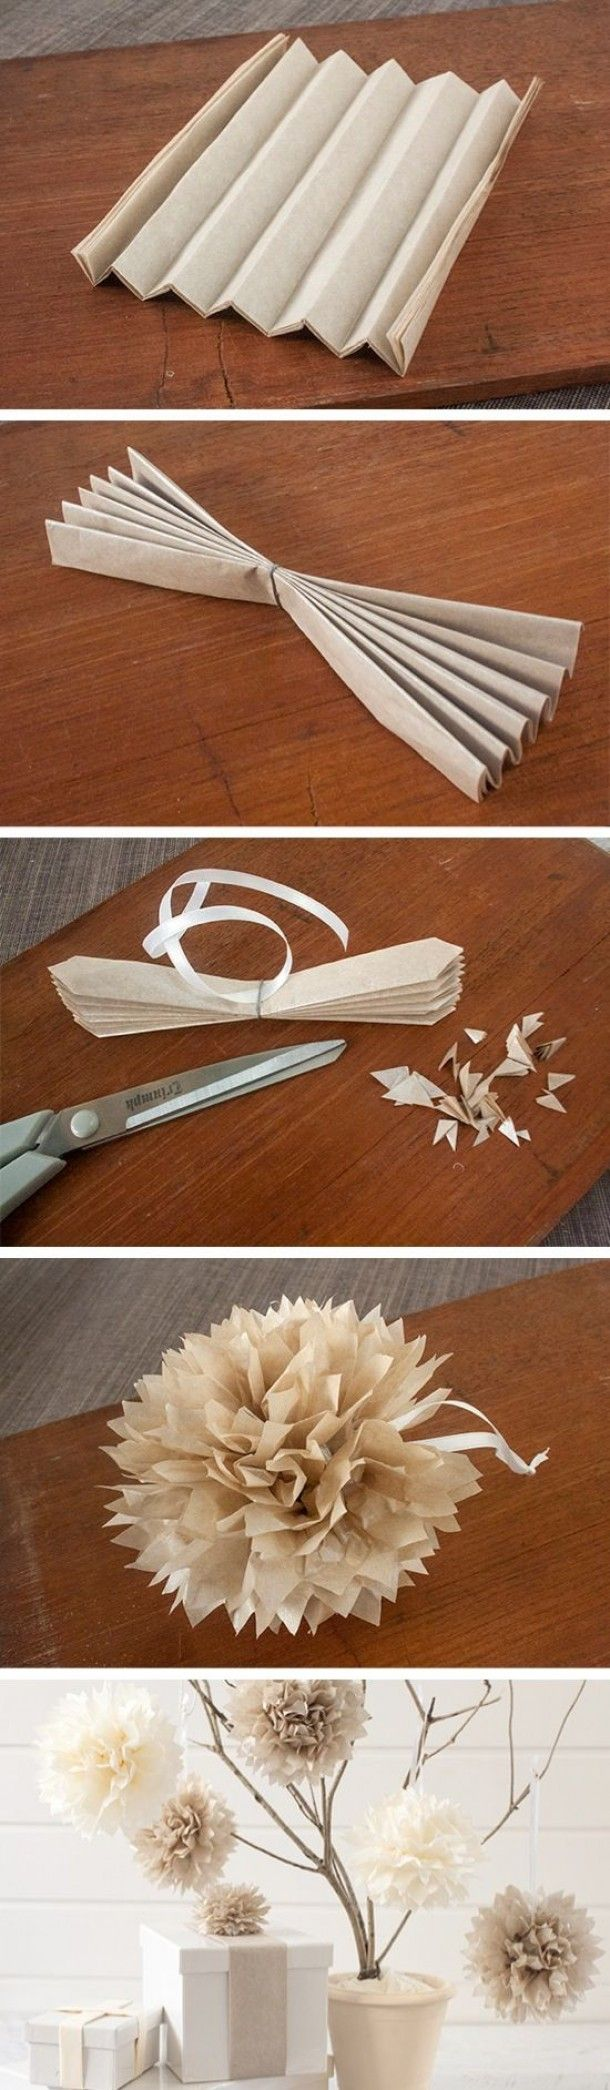 For Jess- Pompoms van papier.. could be another fun inexpensive wedding accent option.